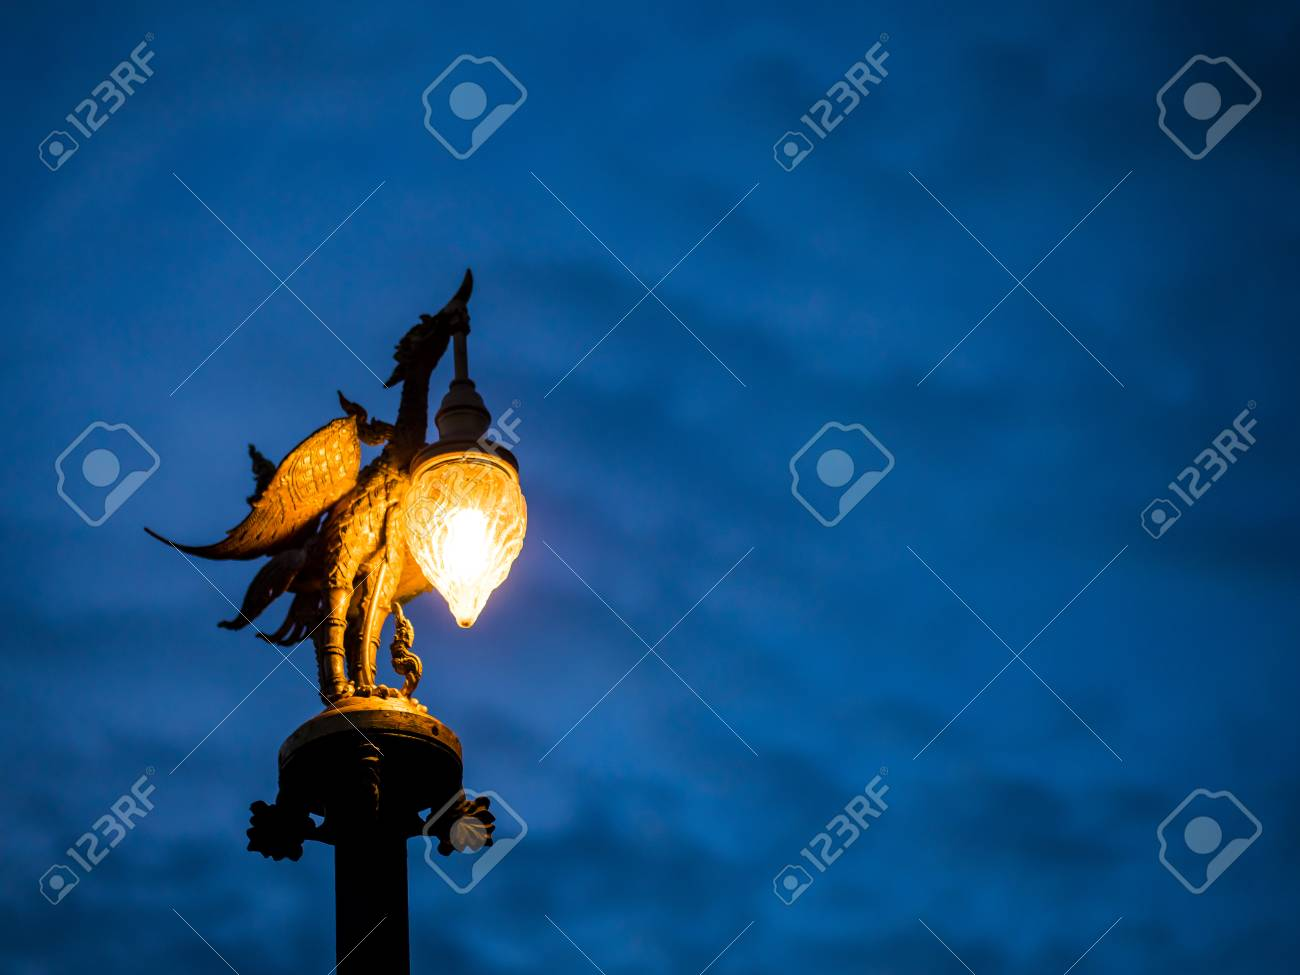 On Bird Lamp Time Dusk